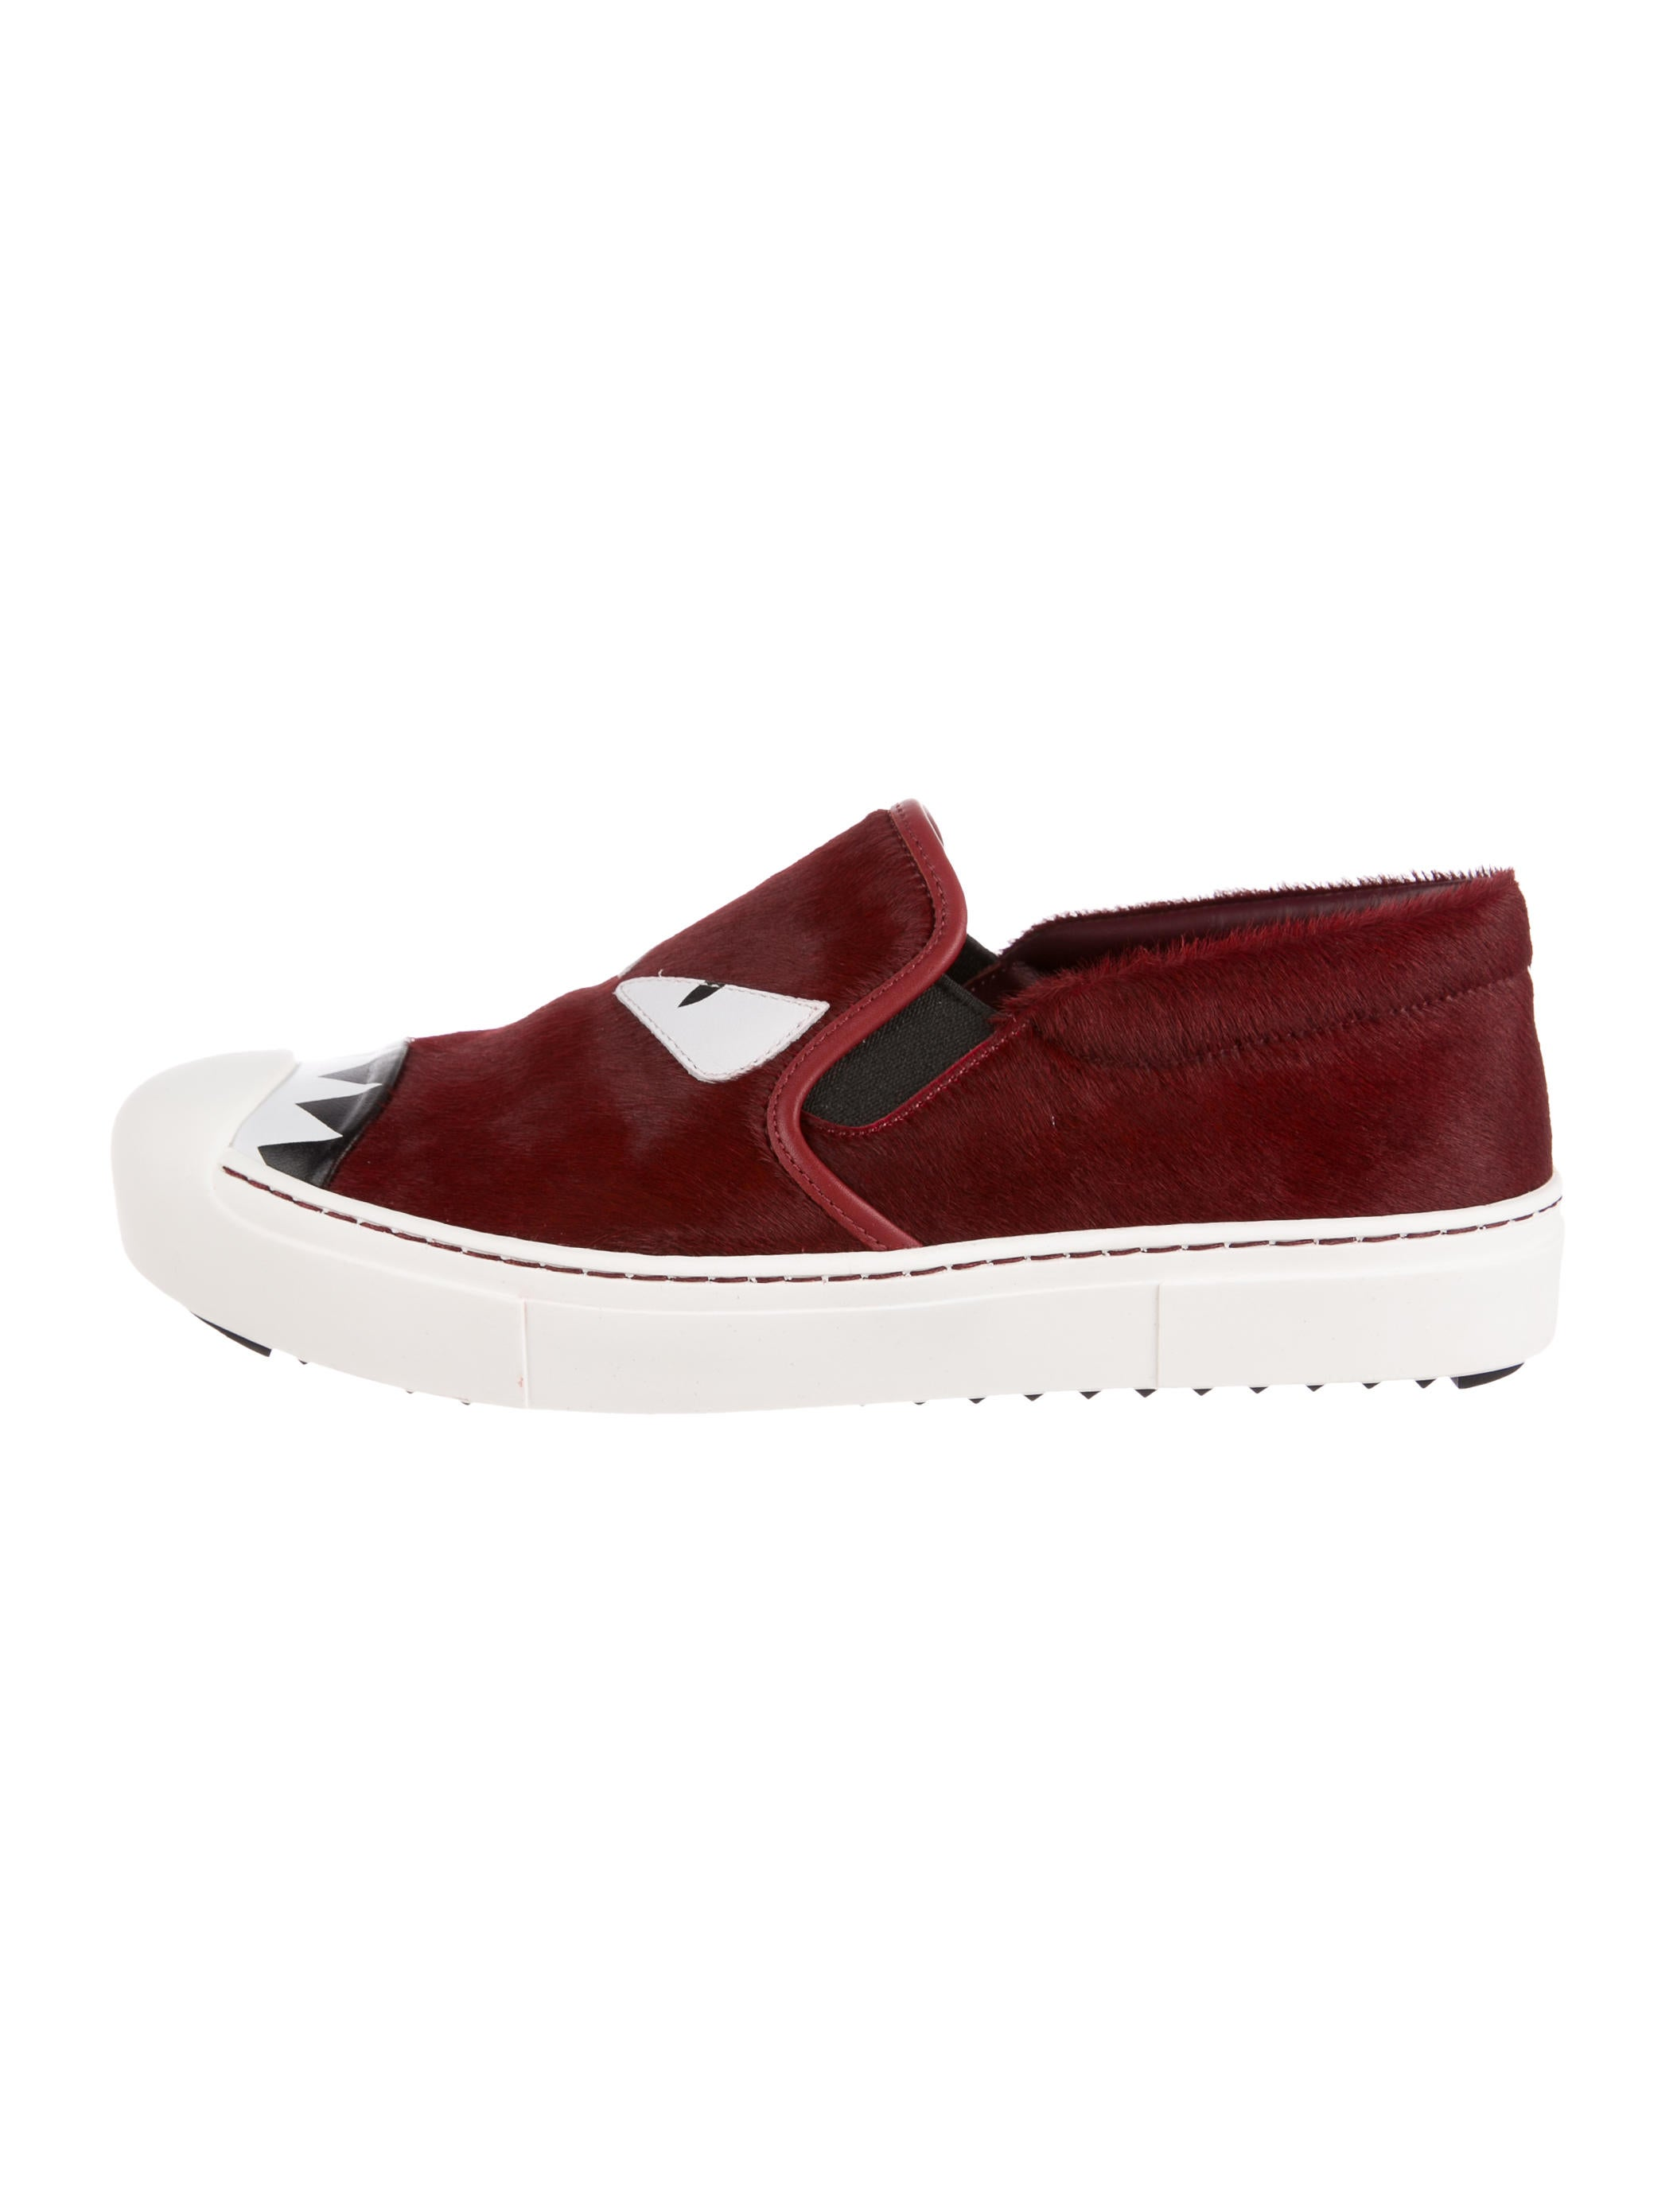 big sale for sale prices cheap online Fendi Ponyhair Slip-On Sneakers AArj40kU